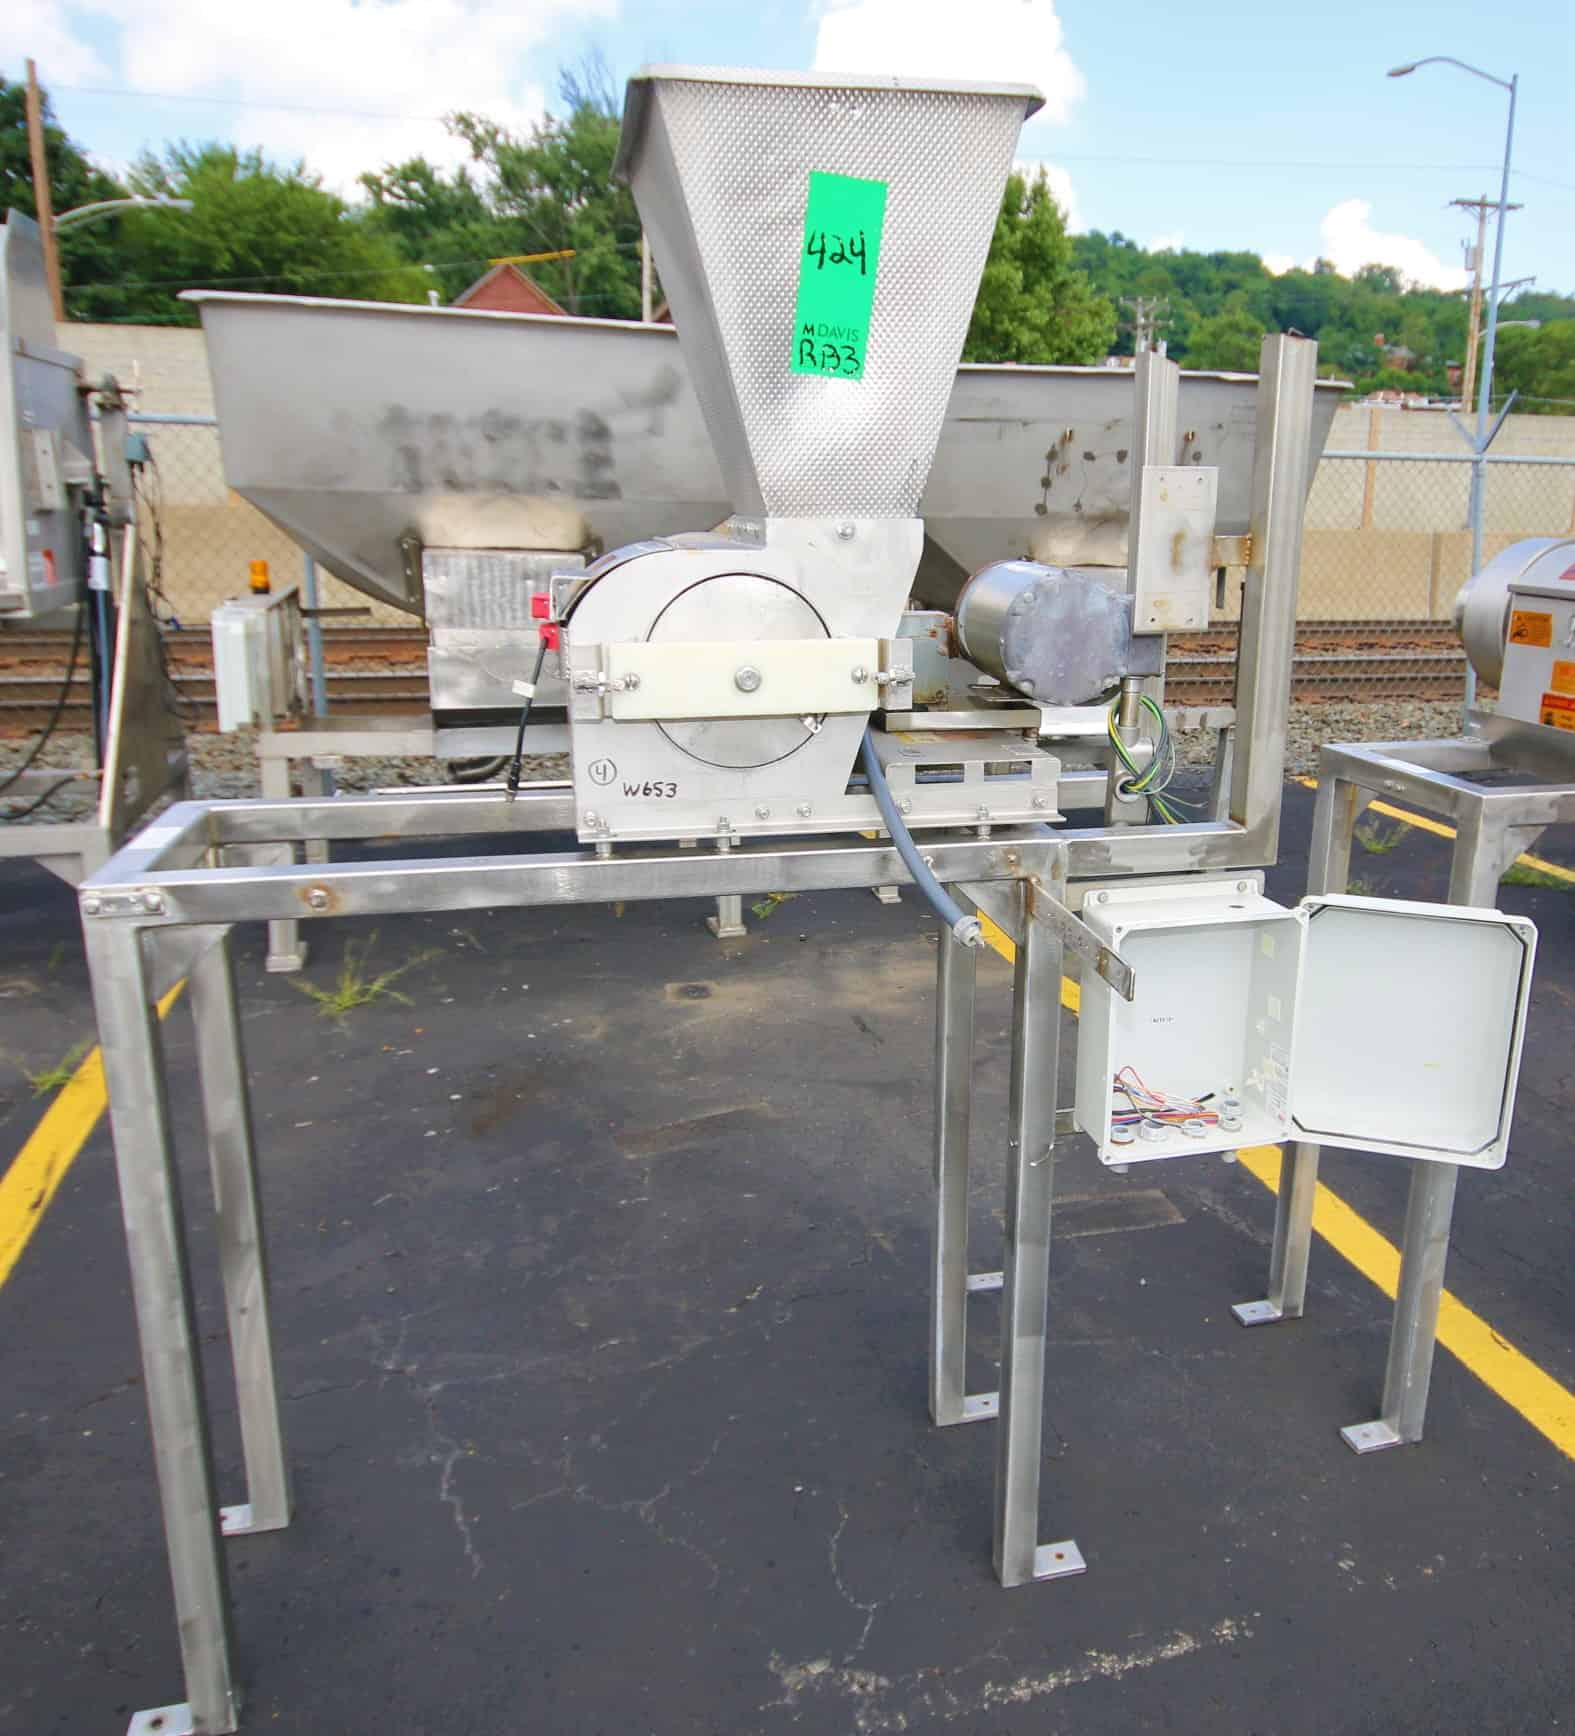 "(3) Key 12"" L x 7"" W Powerered S/S Rotary Valve / Airlocks, Model 4174 with 18"" L x 16"" W S/S Feed Hopper, Mounted on S/S Frame"